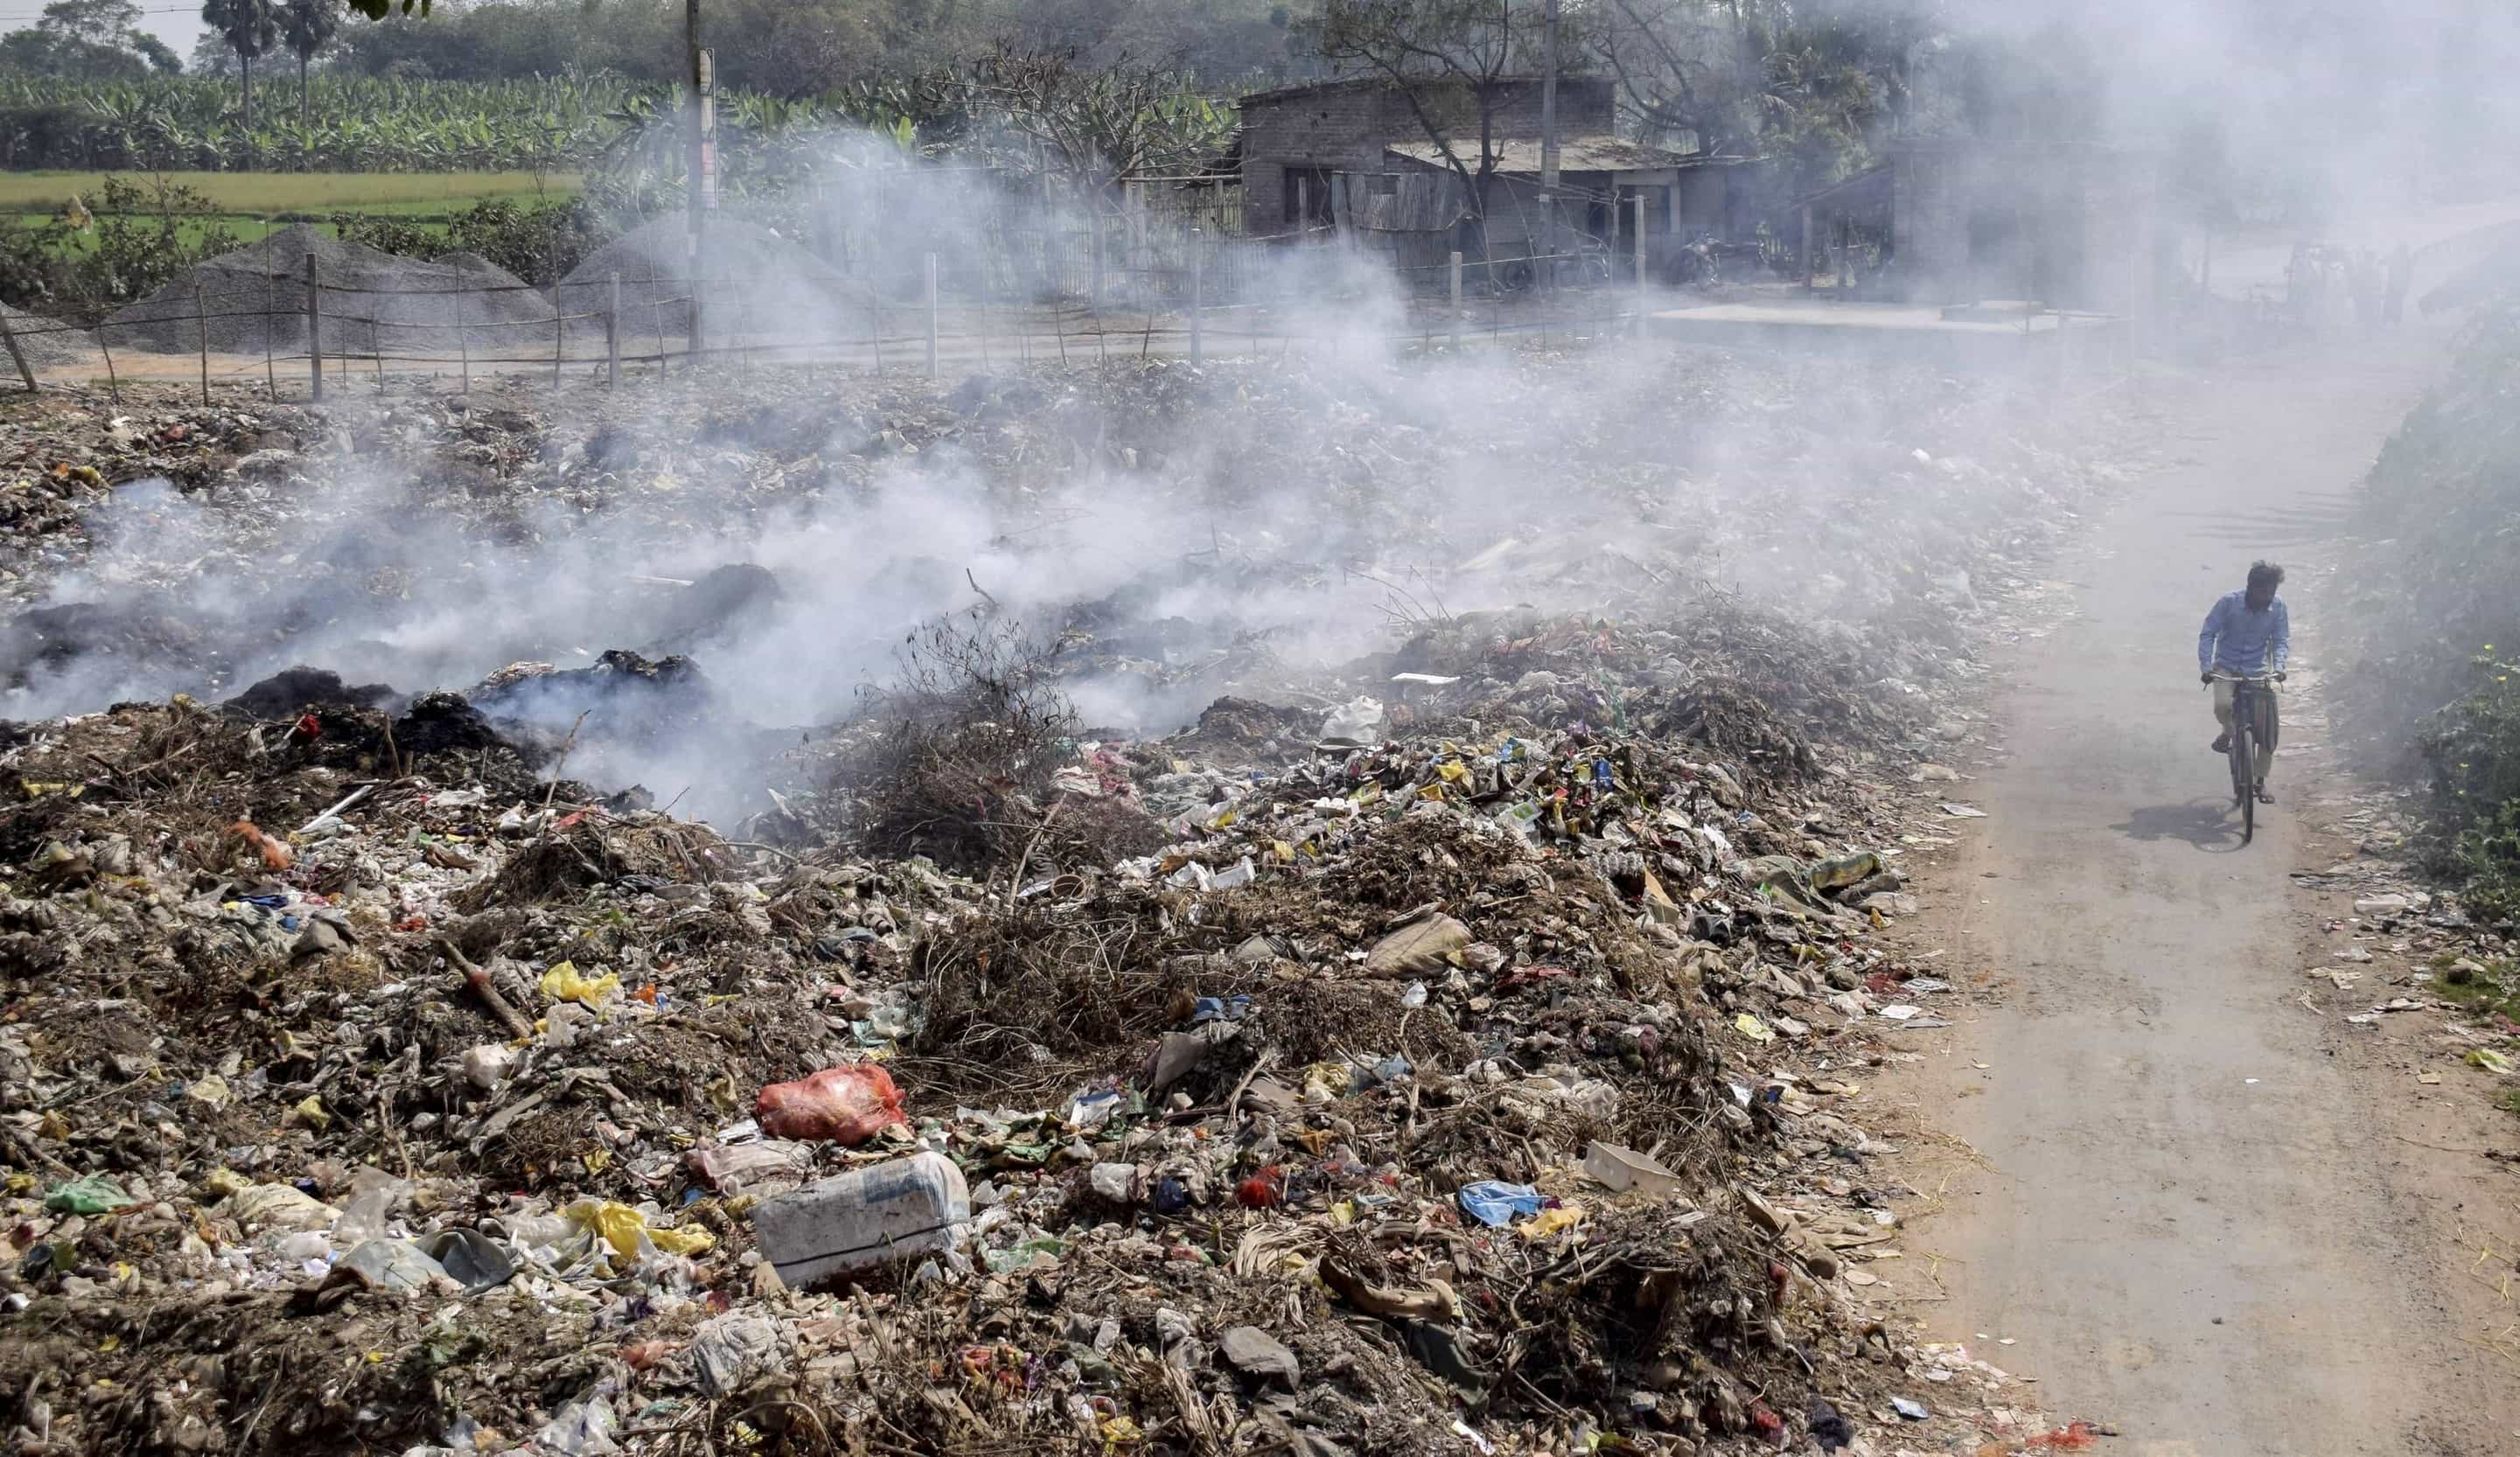 A man on a cycle passes through a dumping ground in Nadia as smoke billows from the garbage on Saturday.